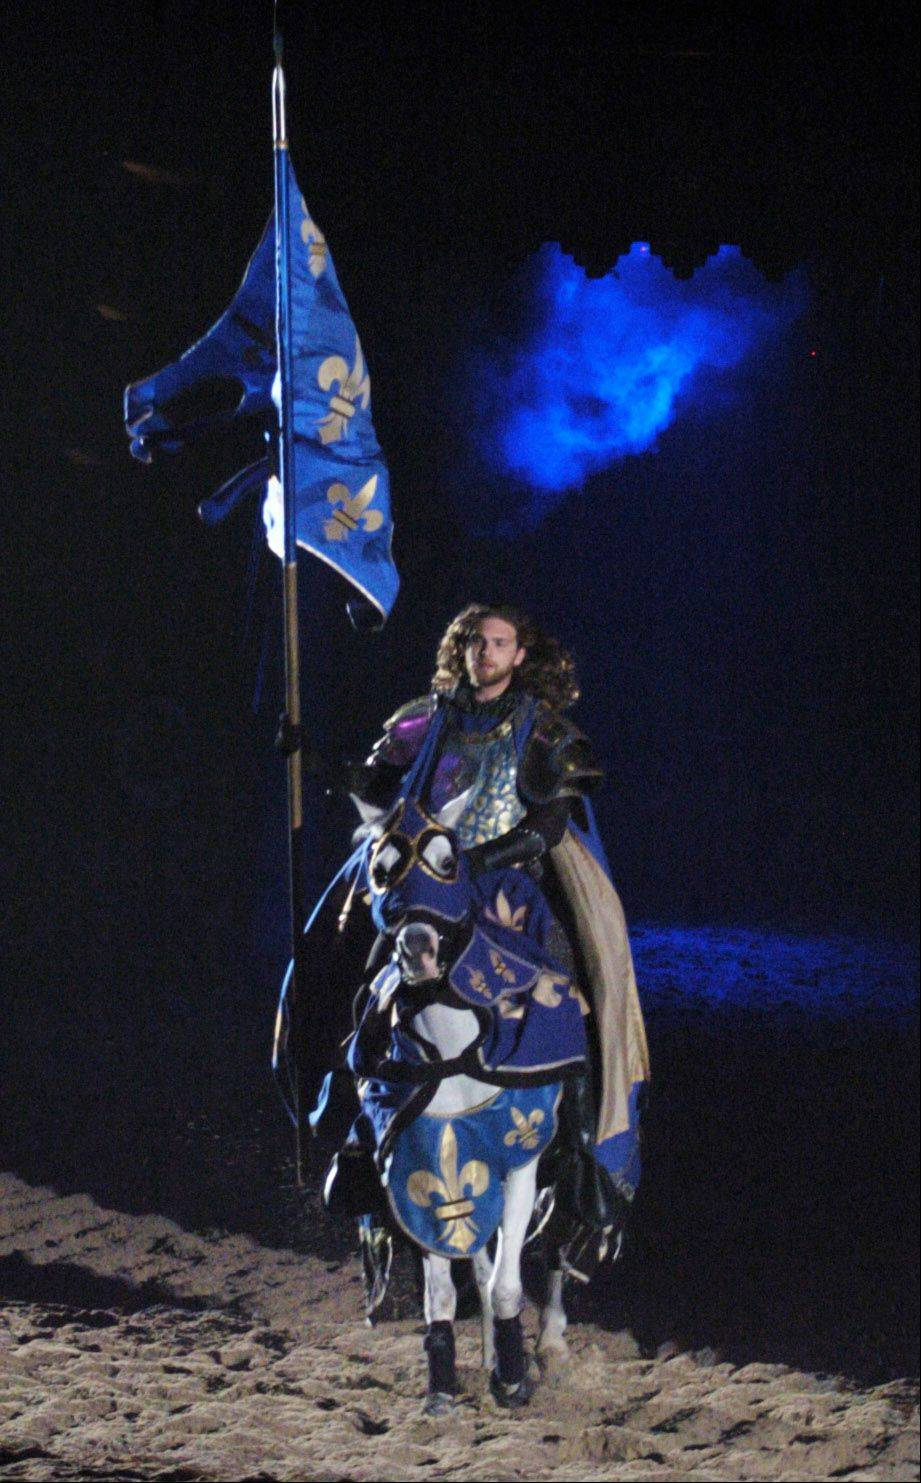 The Blue Knight makes his entrance during a matinee performance at Medieval Times.